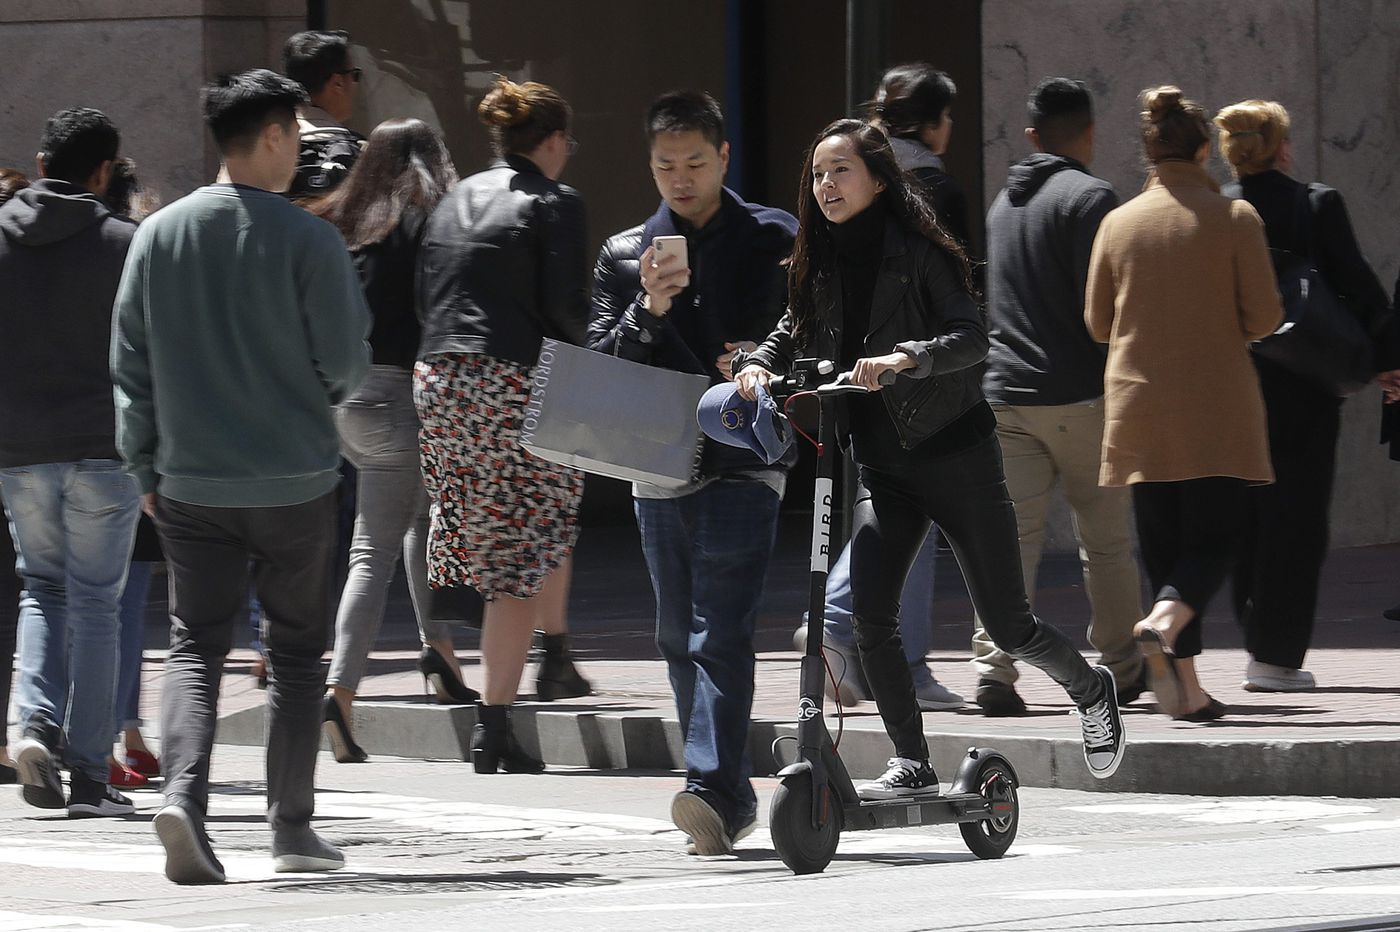 Philly has bad news for Bird, Lime: Electric scooters aren't street legal in Pa.